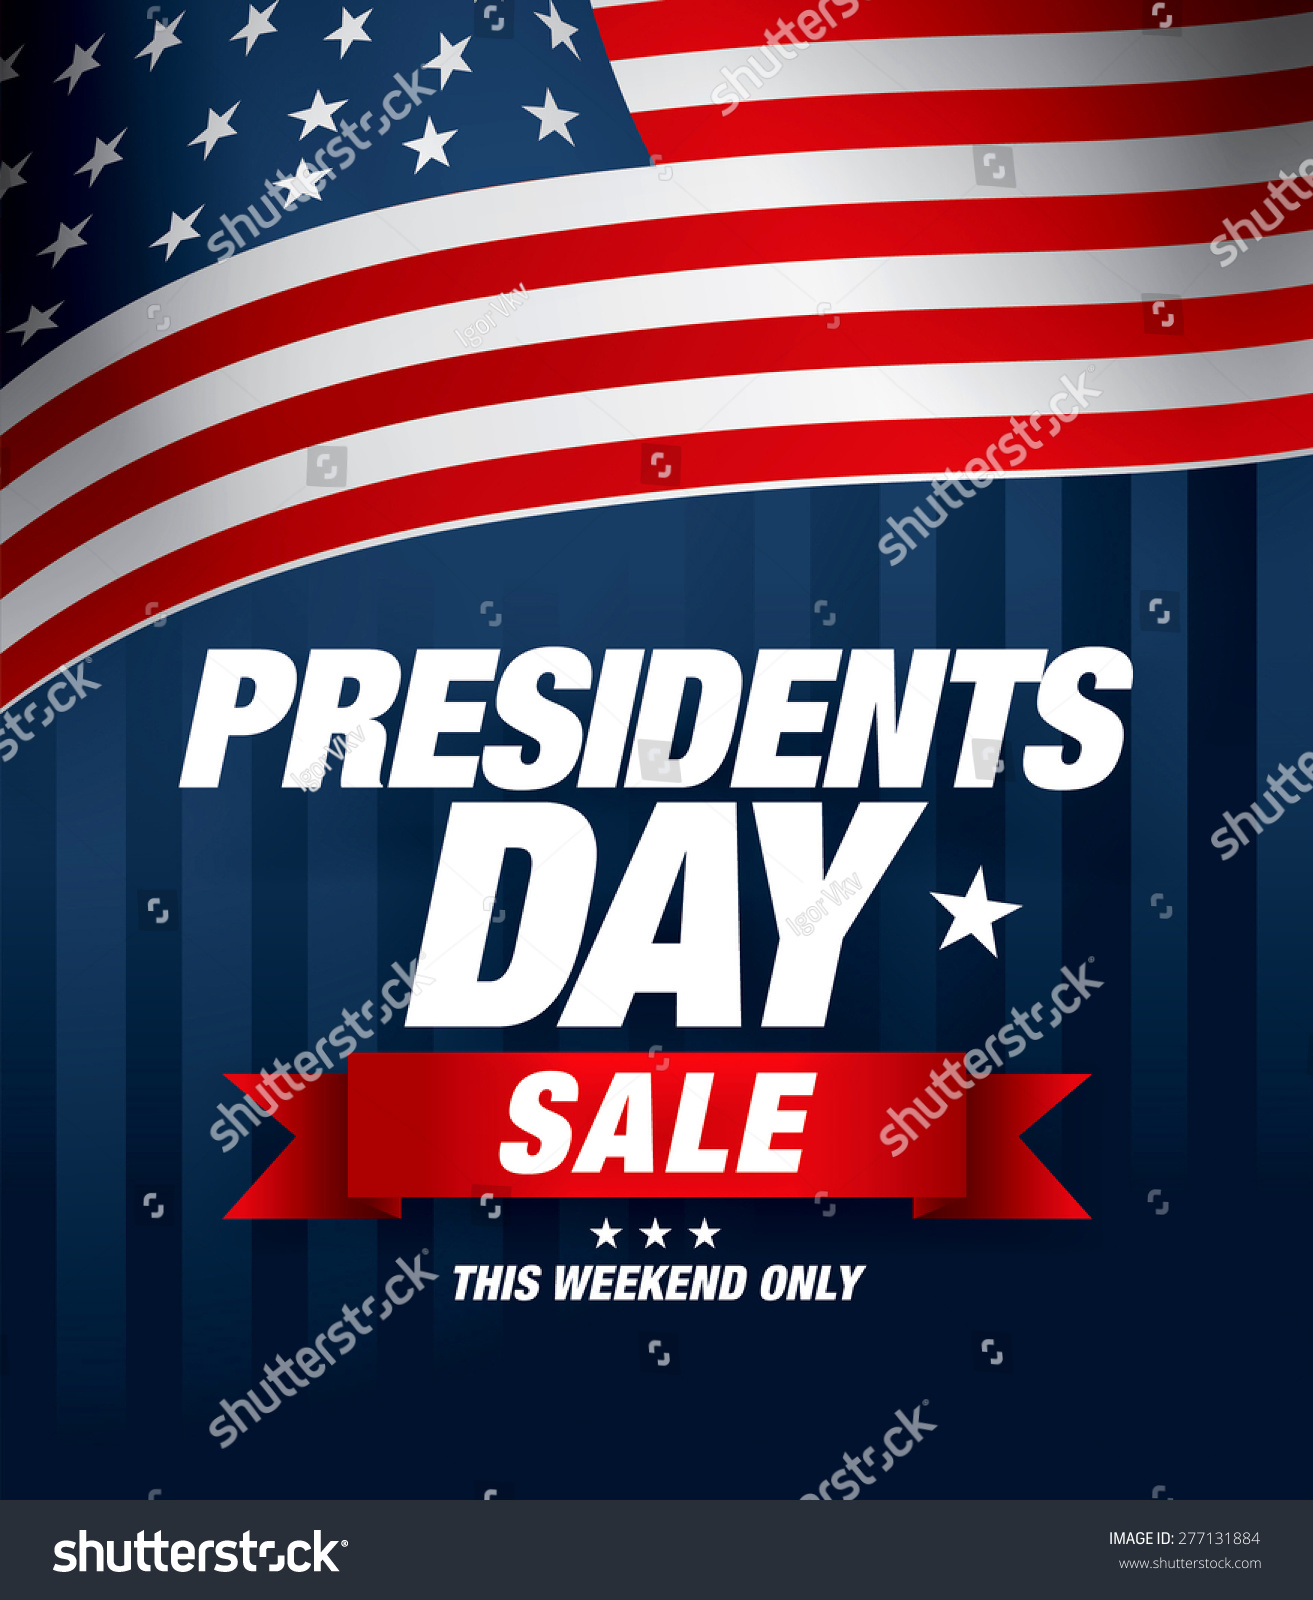 Presidents Day Sale Stock Vector 277131884 Shutterstock